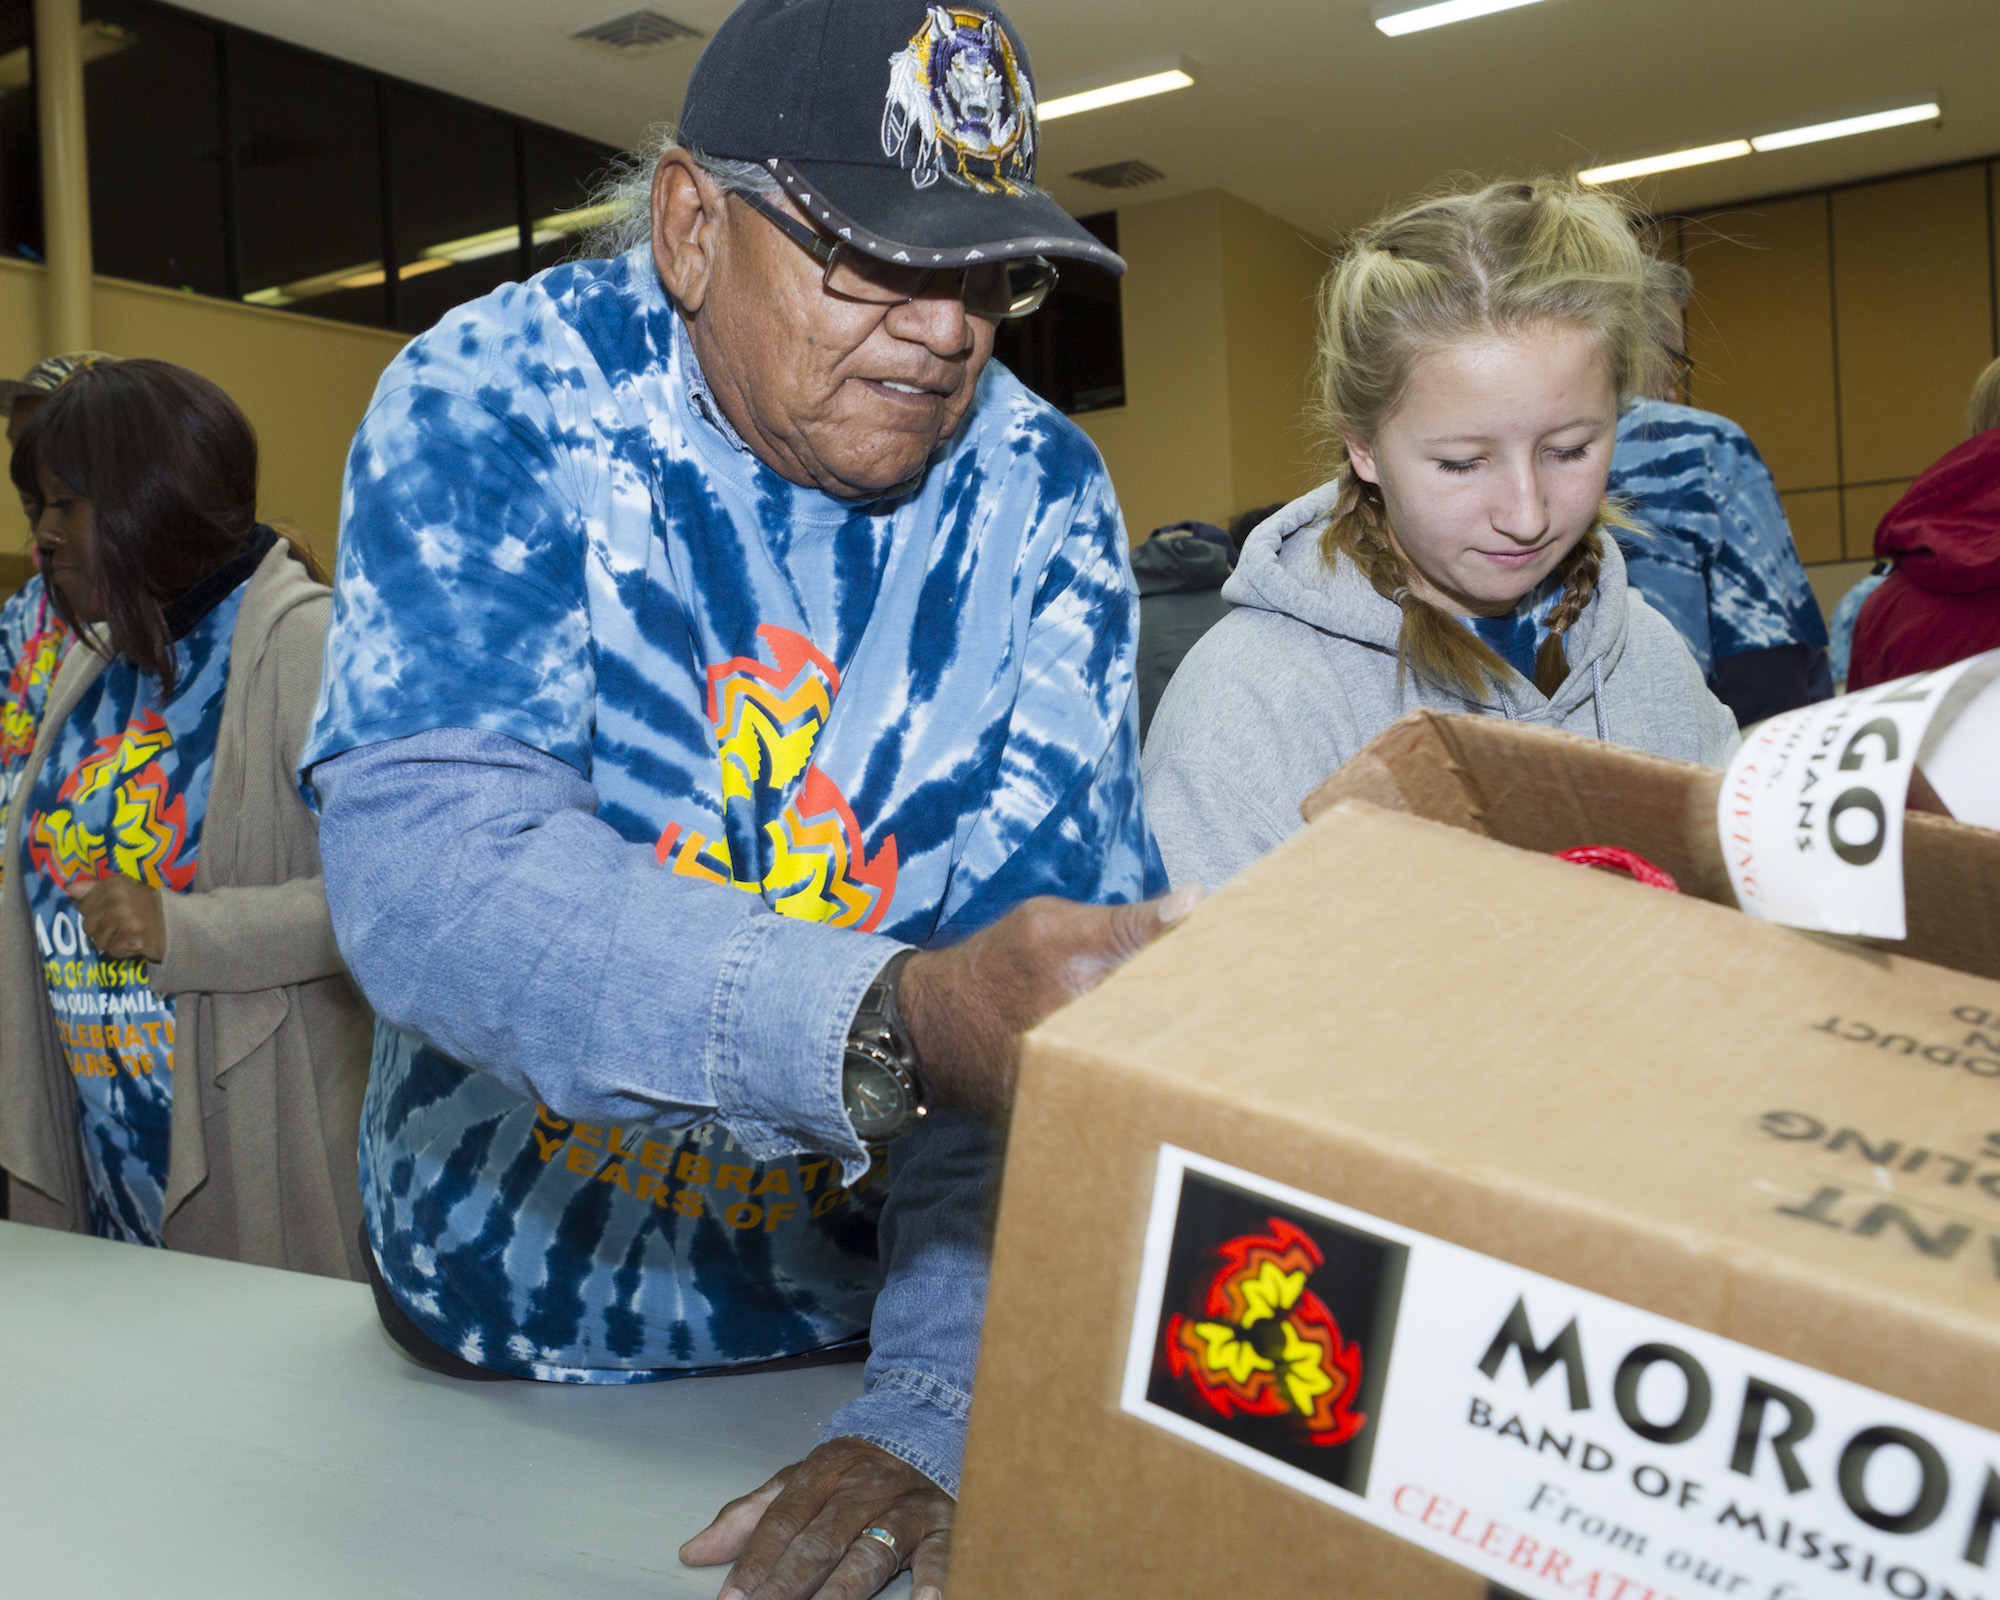 Morongo Band distributes 13K turkeys for Thanksgiving meals